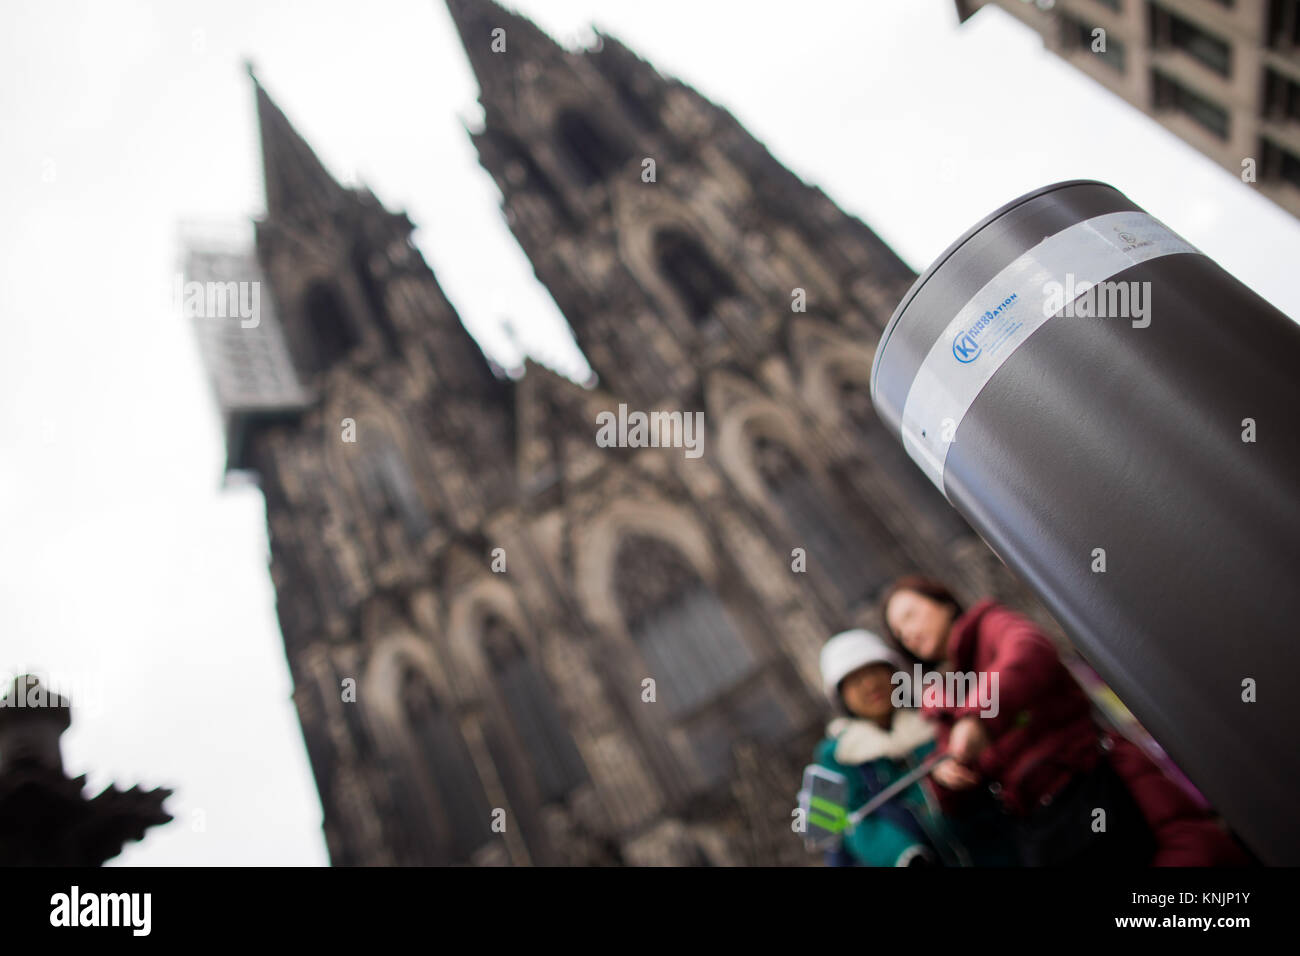 Cologne, Germany. 12th Dec, 2017. Bollards stand in front of the Cologne Cathedral in Cologne, Germany, 12 December - Stock Image